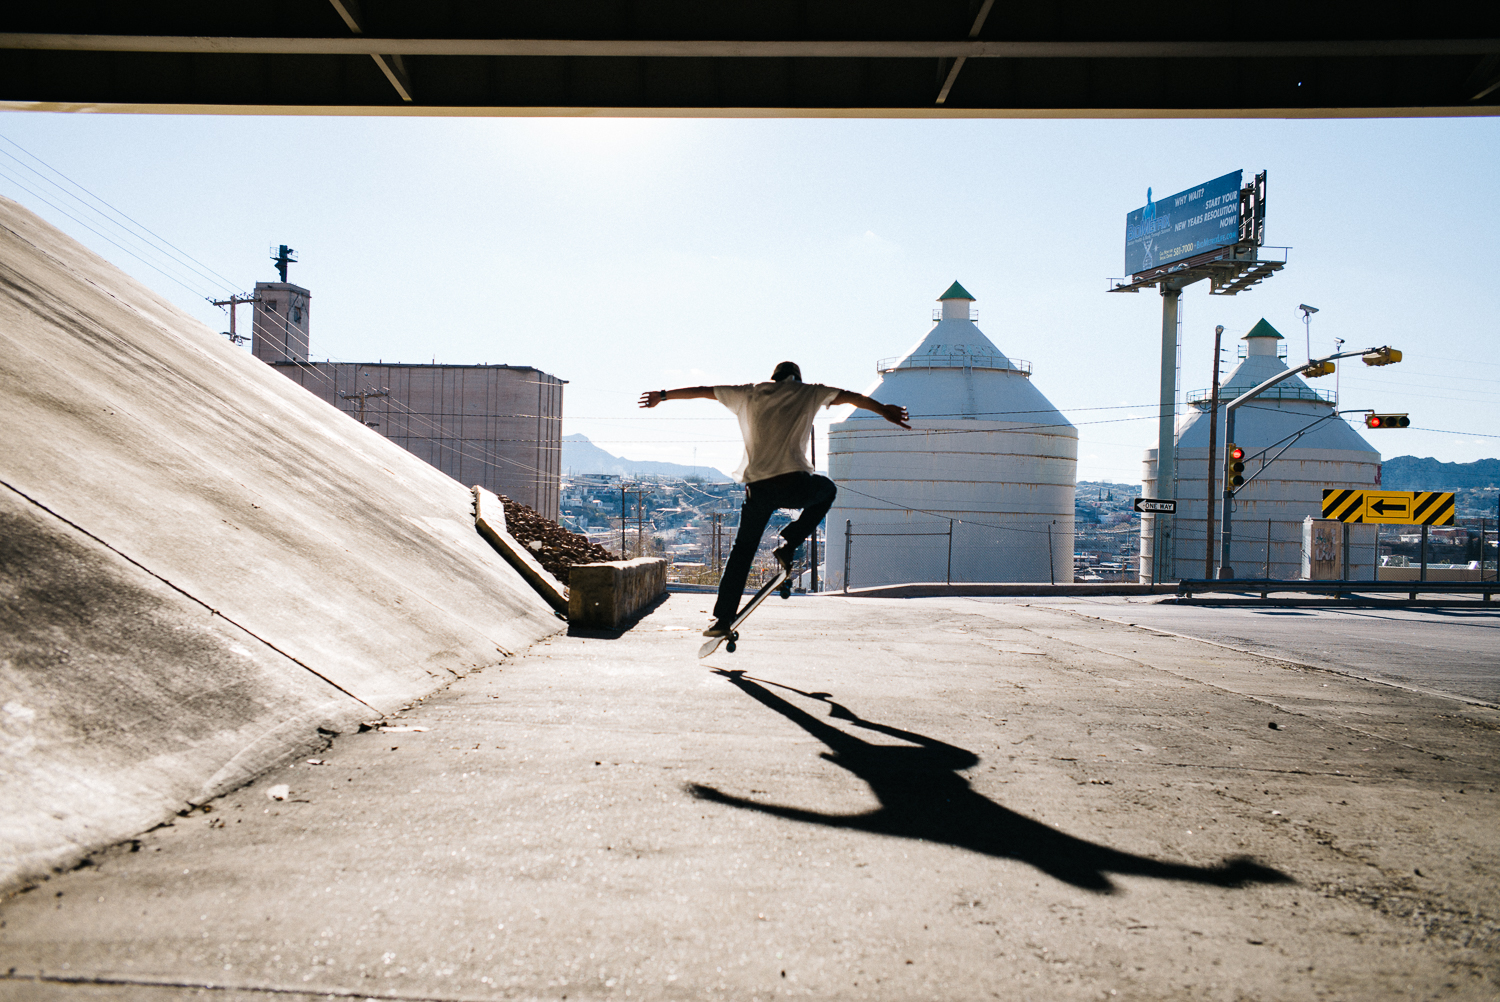 My brother Ben skating under the I-10 freeway facing into Juarez, Mexico.  Michael Lim Photography 2015 ©